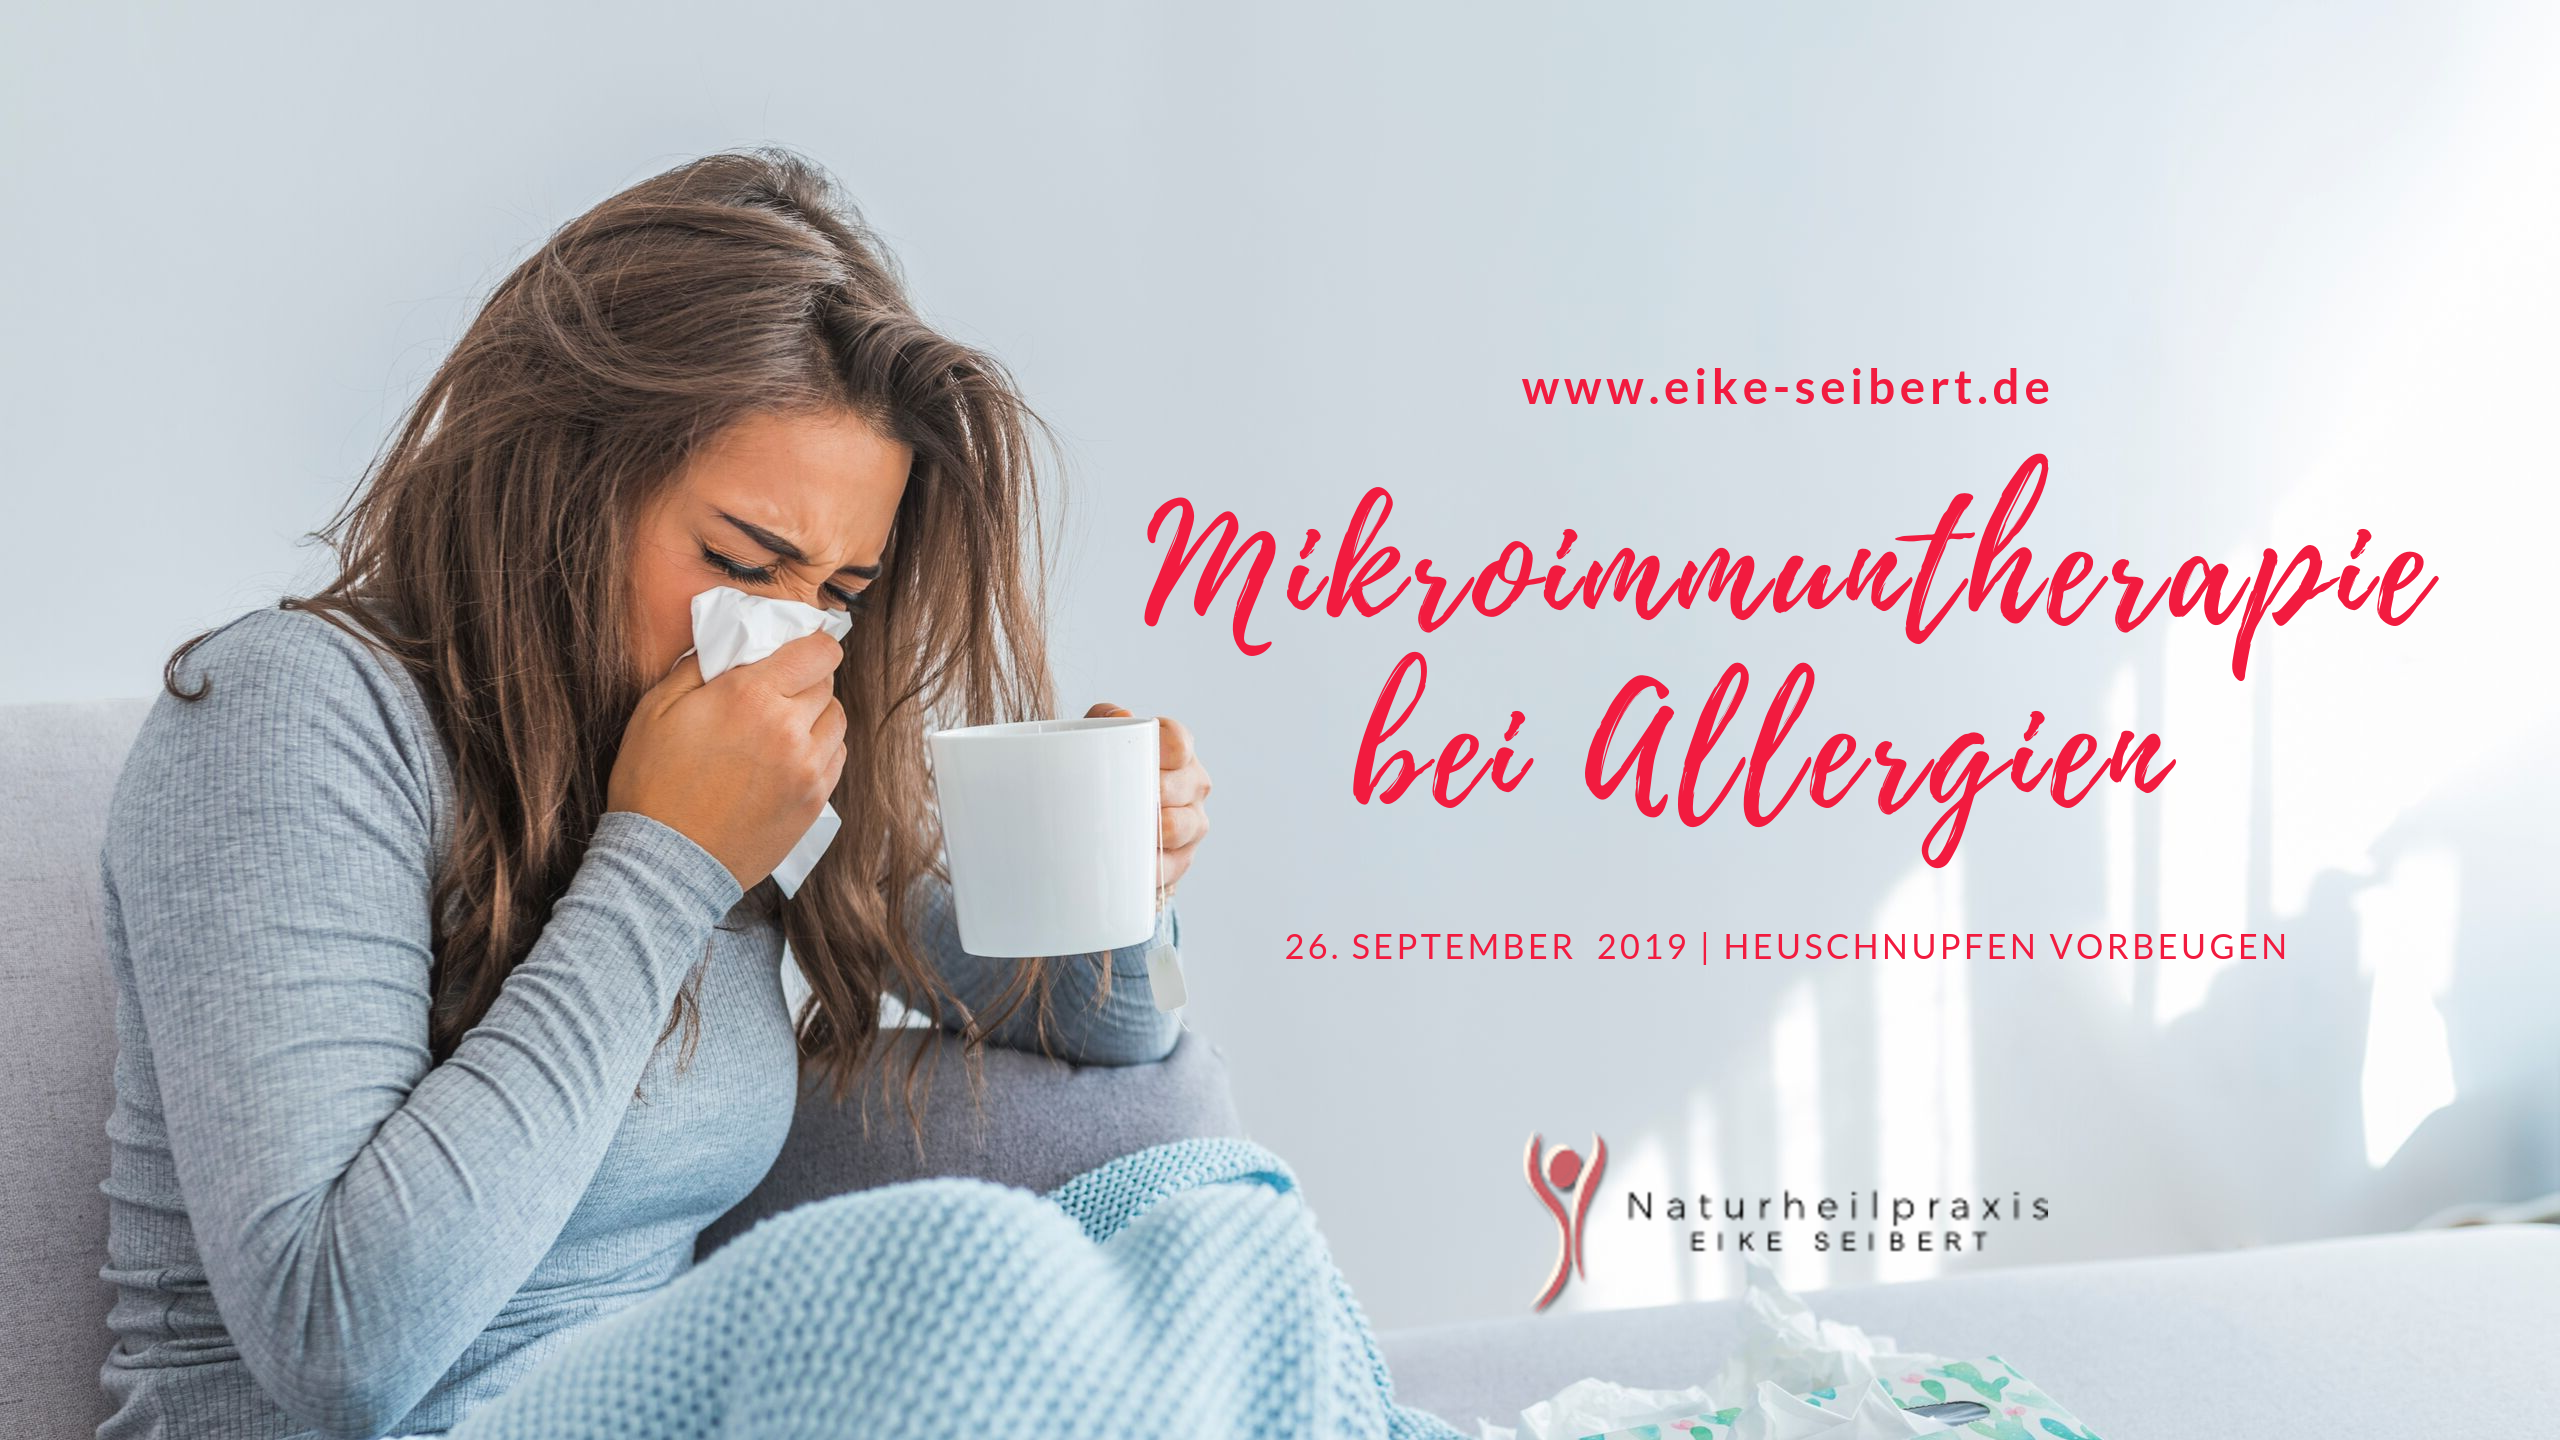 Mikroimmuntherapie bei Allergien